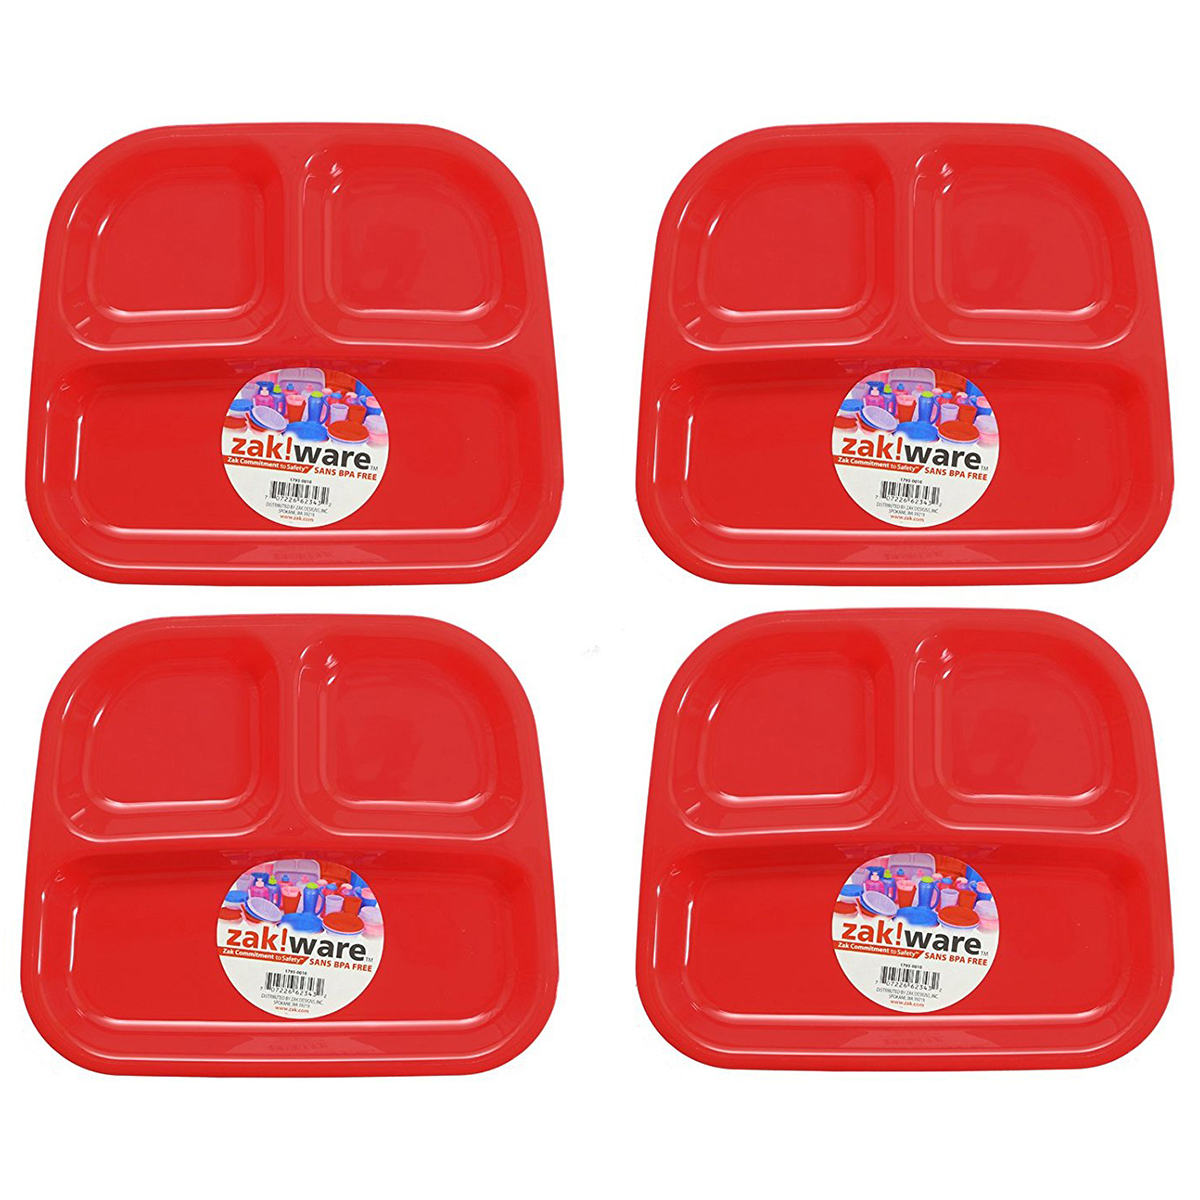 Zack (4 Pack) Kids 3-Section Divided Plate BPA Free Plastic Reusable Dinner Divider Tray - Walmart.com  sc 1 st  Walmart & Zack (4 Pack) Kids 3-Section Divided Plate BPA Free Plastic Reusable ...